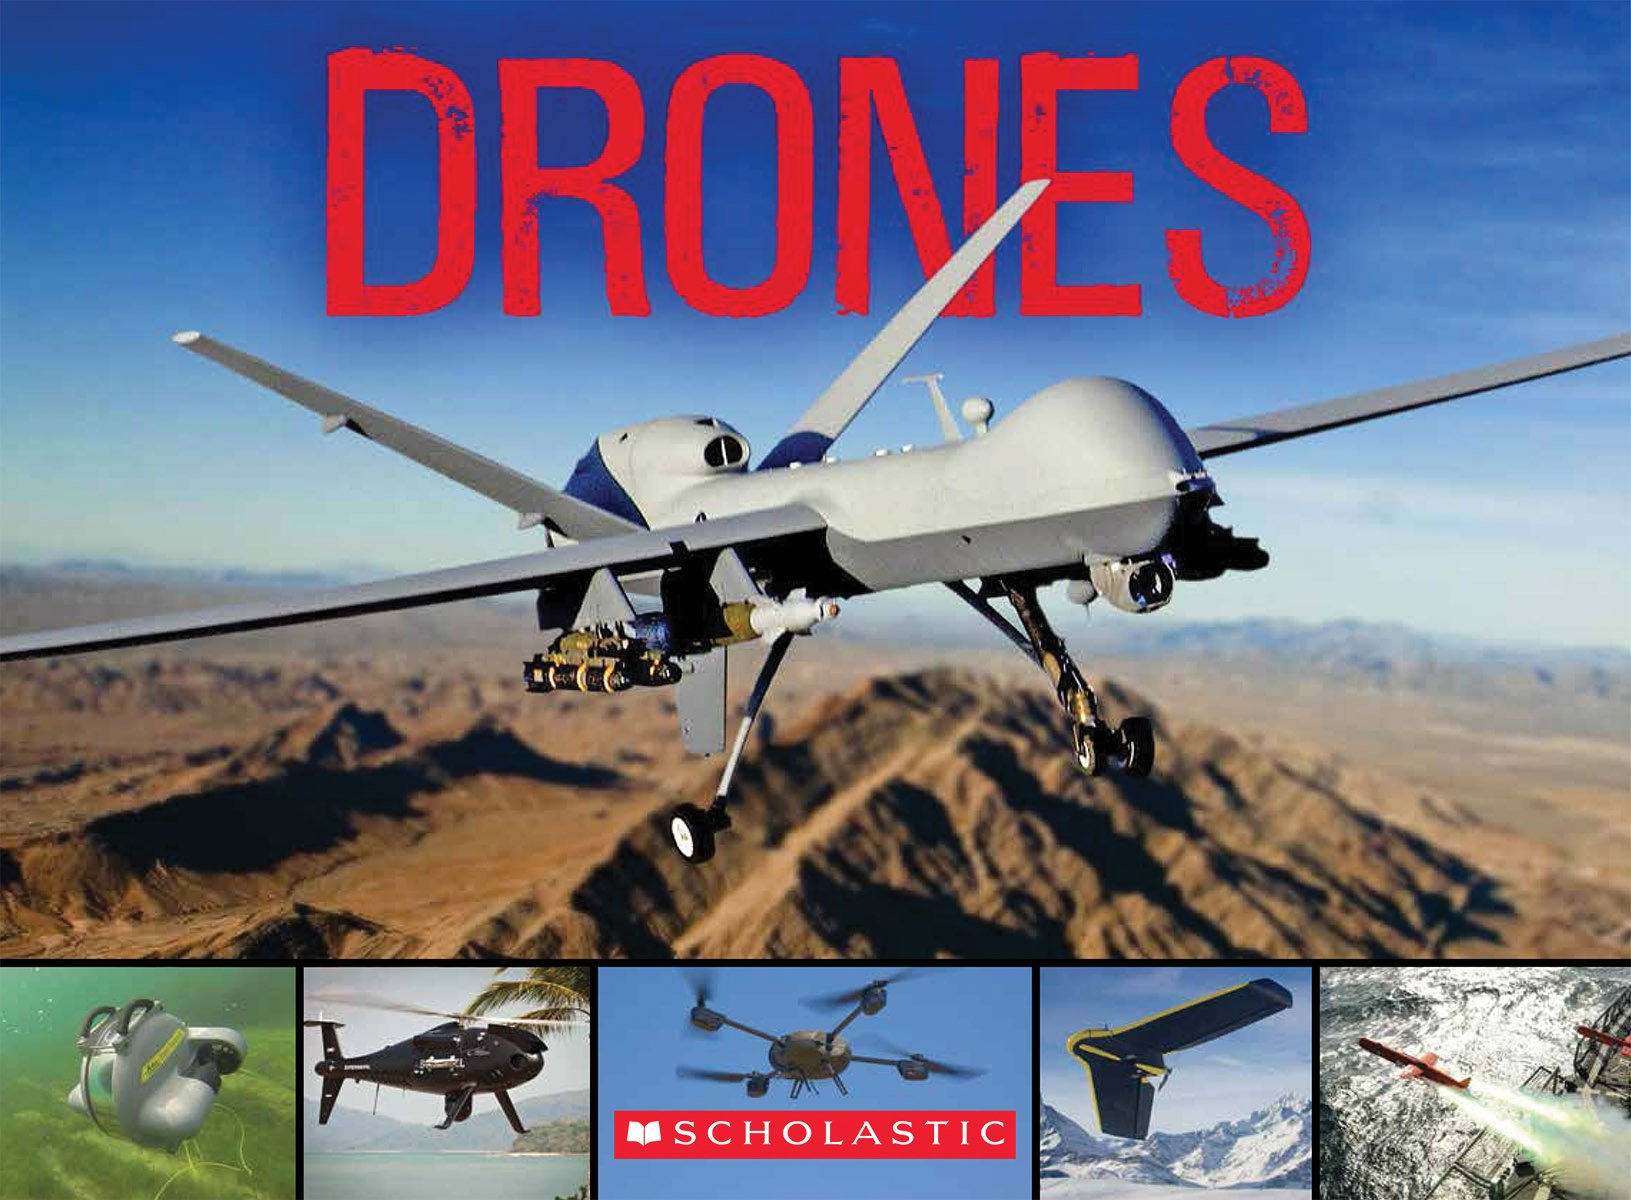 Drones From Insect Spy To Bomber Scholastic 9780545664769 Amazon Books